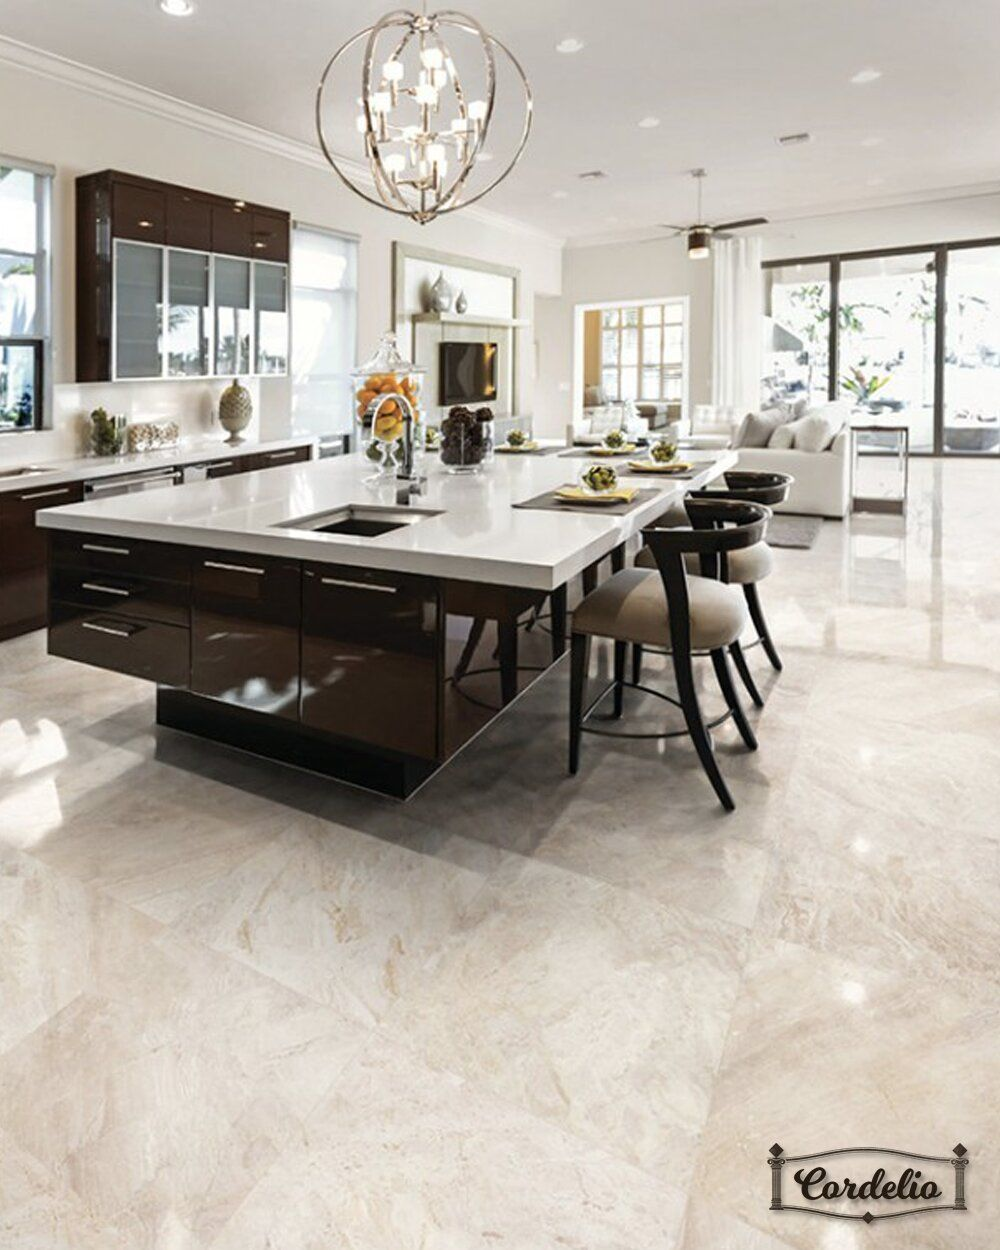 Cordelio 12 X 12 Marble Mosaic Wall Floor Tile In 2020 Kitchen Design Open Dream Kitchens Design Kitchen Decor